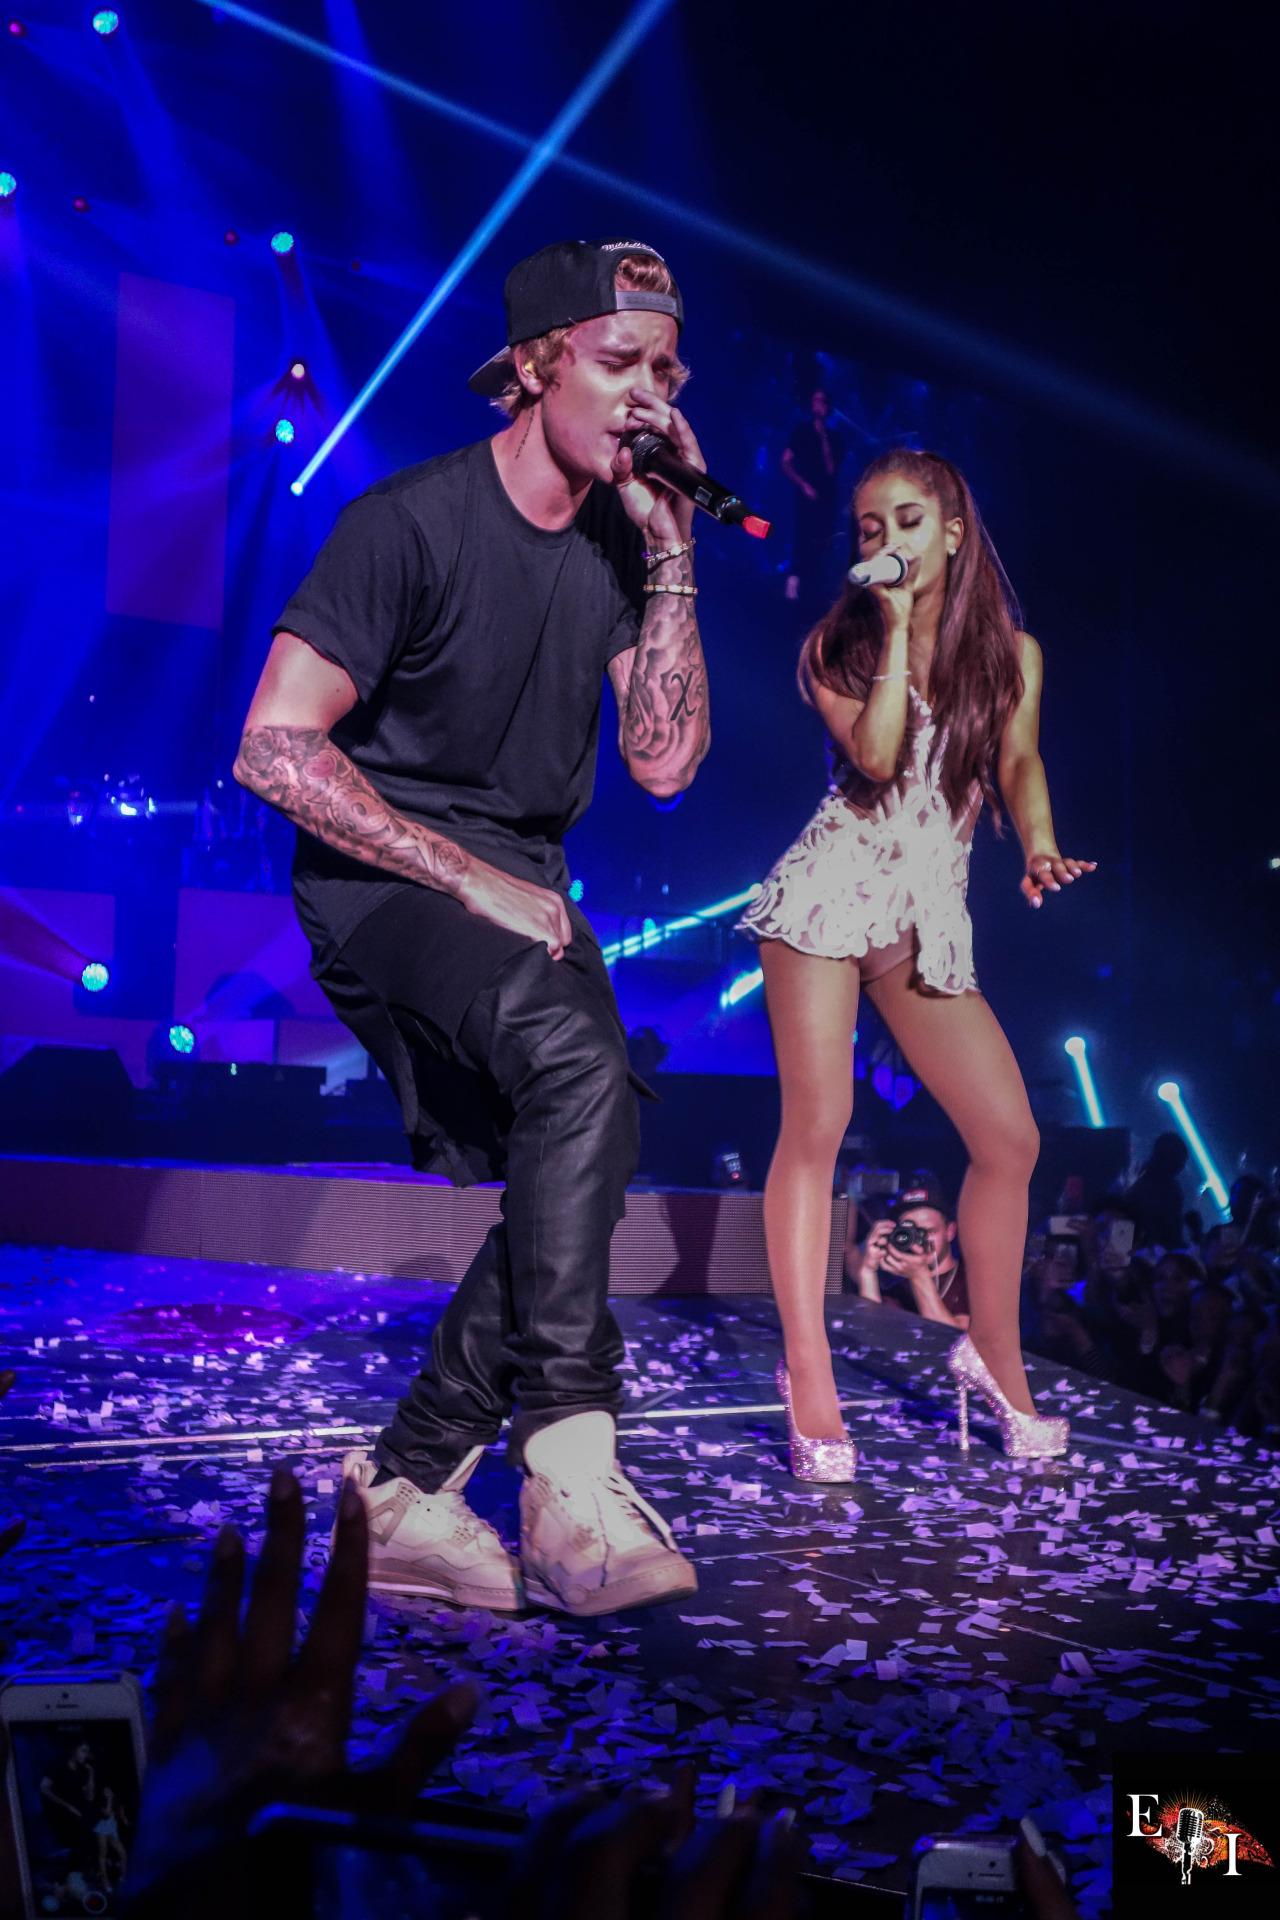 Surprise Justin Bieber hits up the stage at Ariana Grande 1280x1920